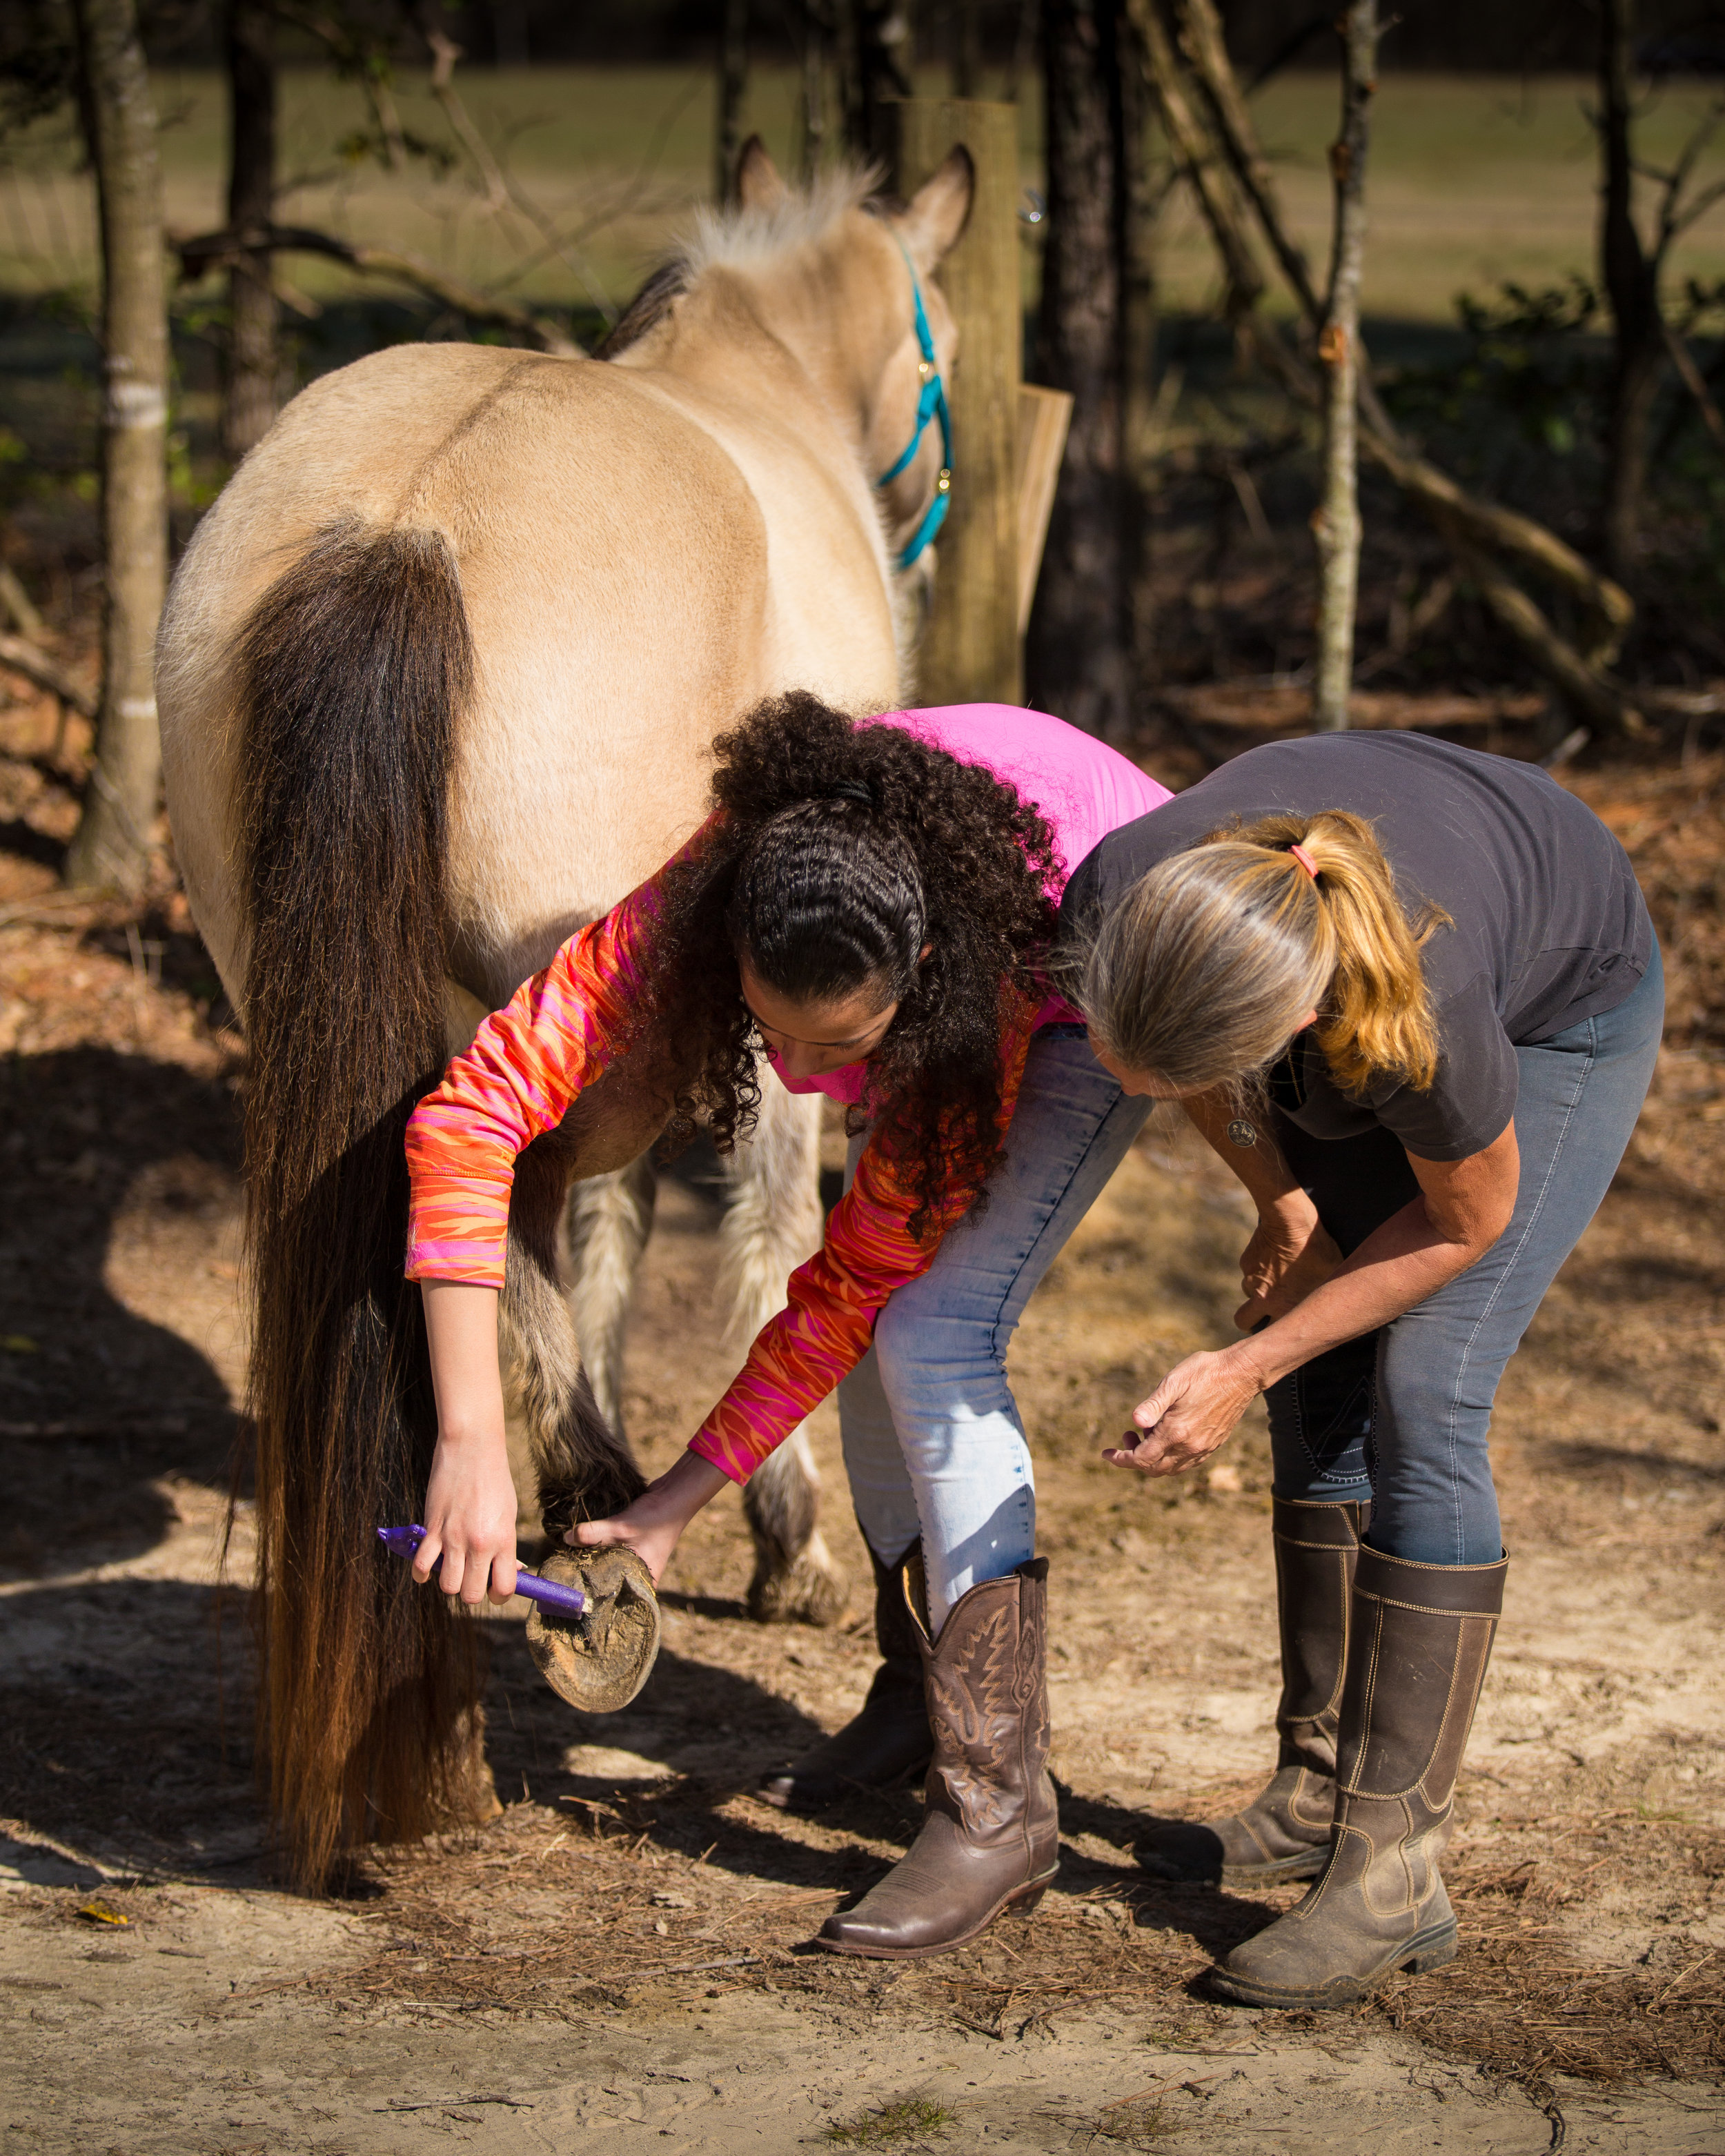 Learning about horses and hoof care is an important part of building that relationship with a horse.